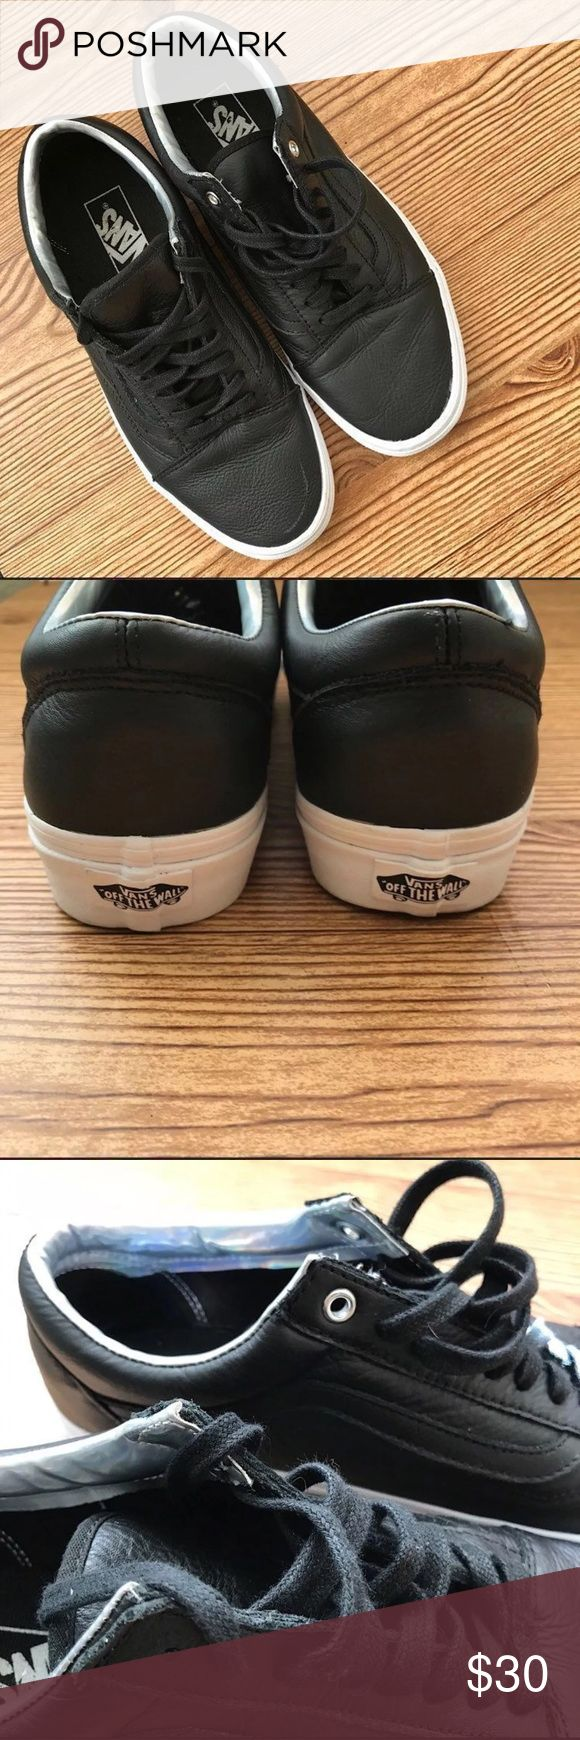 Black Leather Vans Worn only once. The only flaw is the silver ring in one of the shoes is missing.   Men's 8.5// Women's 11  #oldschool #holographic #skateshoes #unisex #oldskool Vans Shoes Sneakers